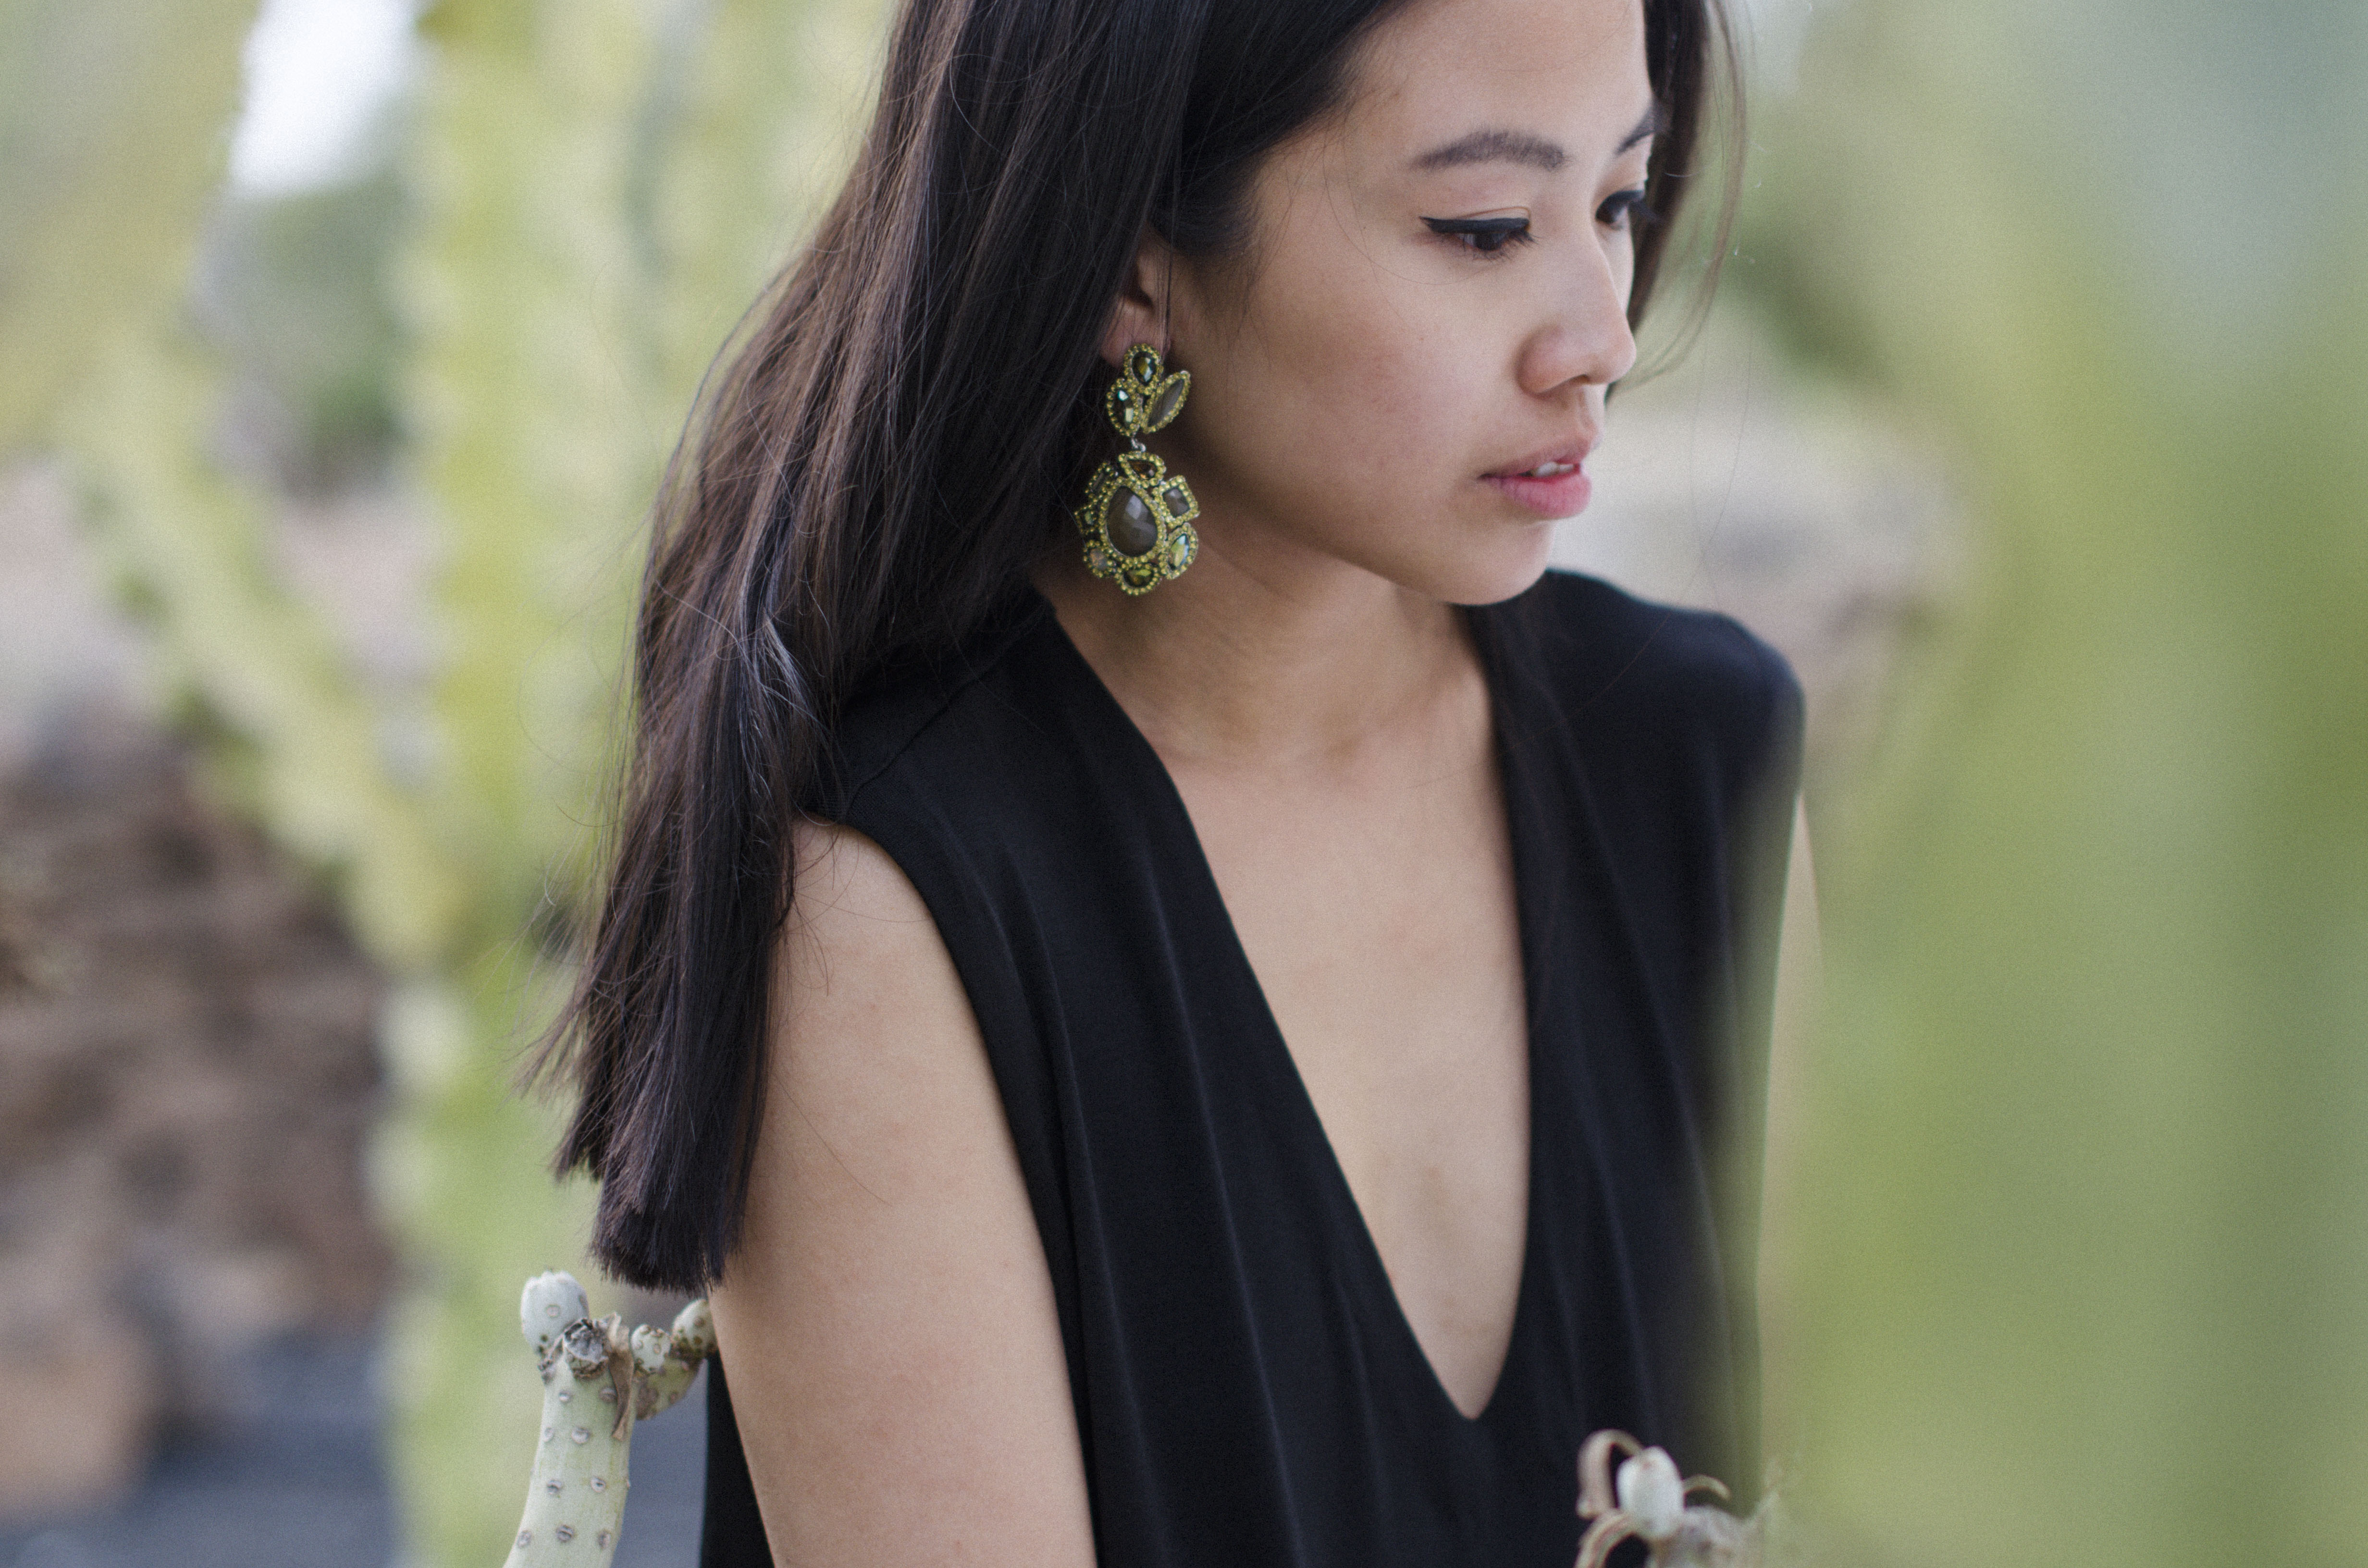 IHEARTALICE.DE – Fashion & Travel-Blog from Germany/Berlin by Alice M. Huynh: Black Jersey V-Neck Dress by Alice M. Huynh & Statement Swarowski Earrings in Fuerteventura